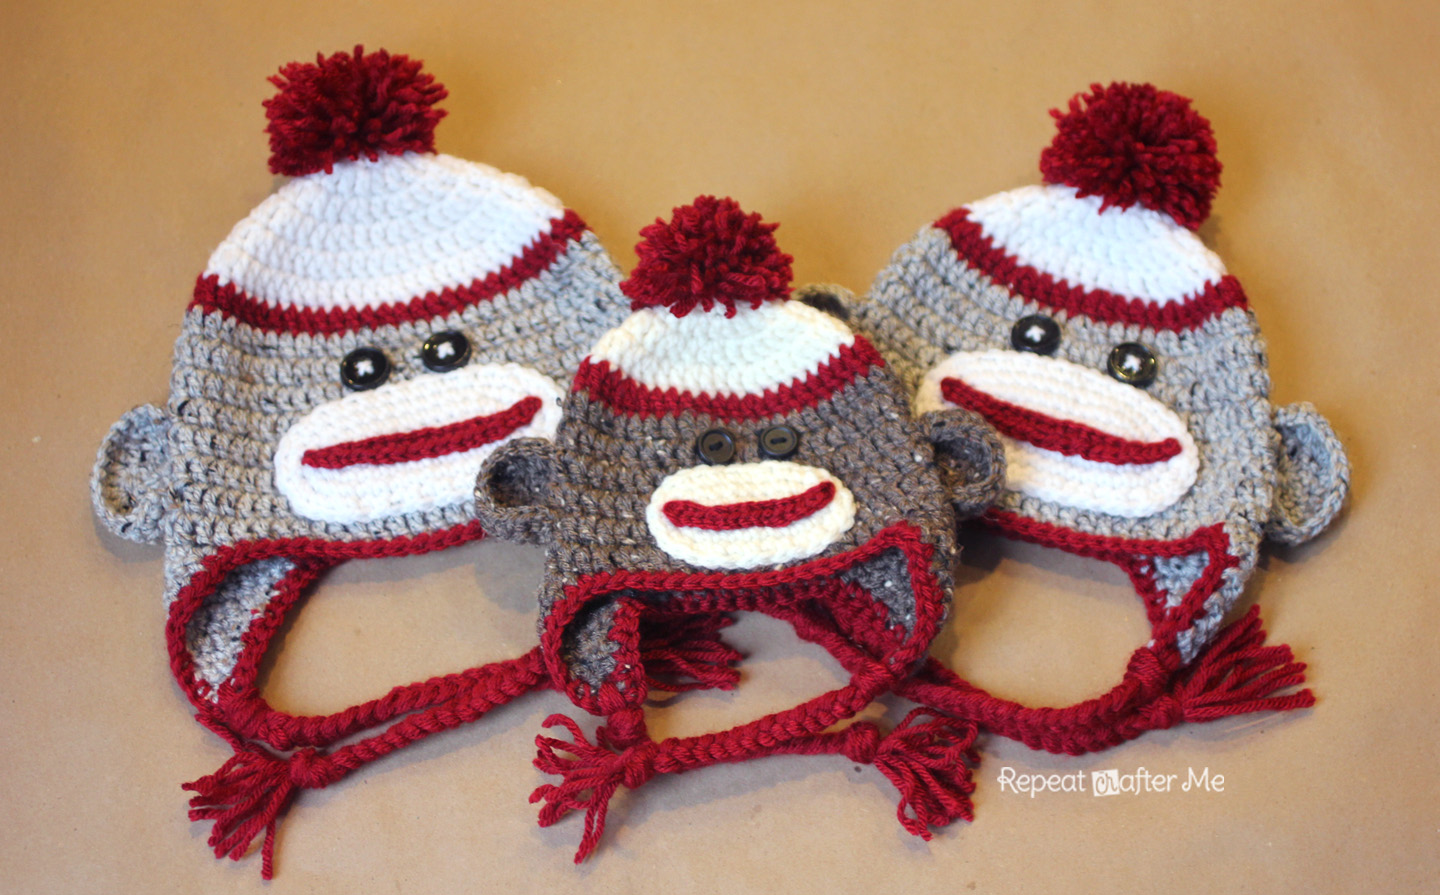 Crochet Sock Monkey Hat Pattern - Repeat Crafter Me d3974b4484e